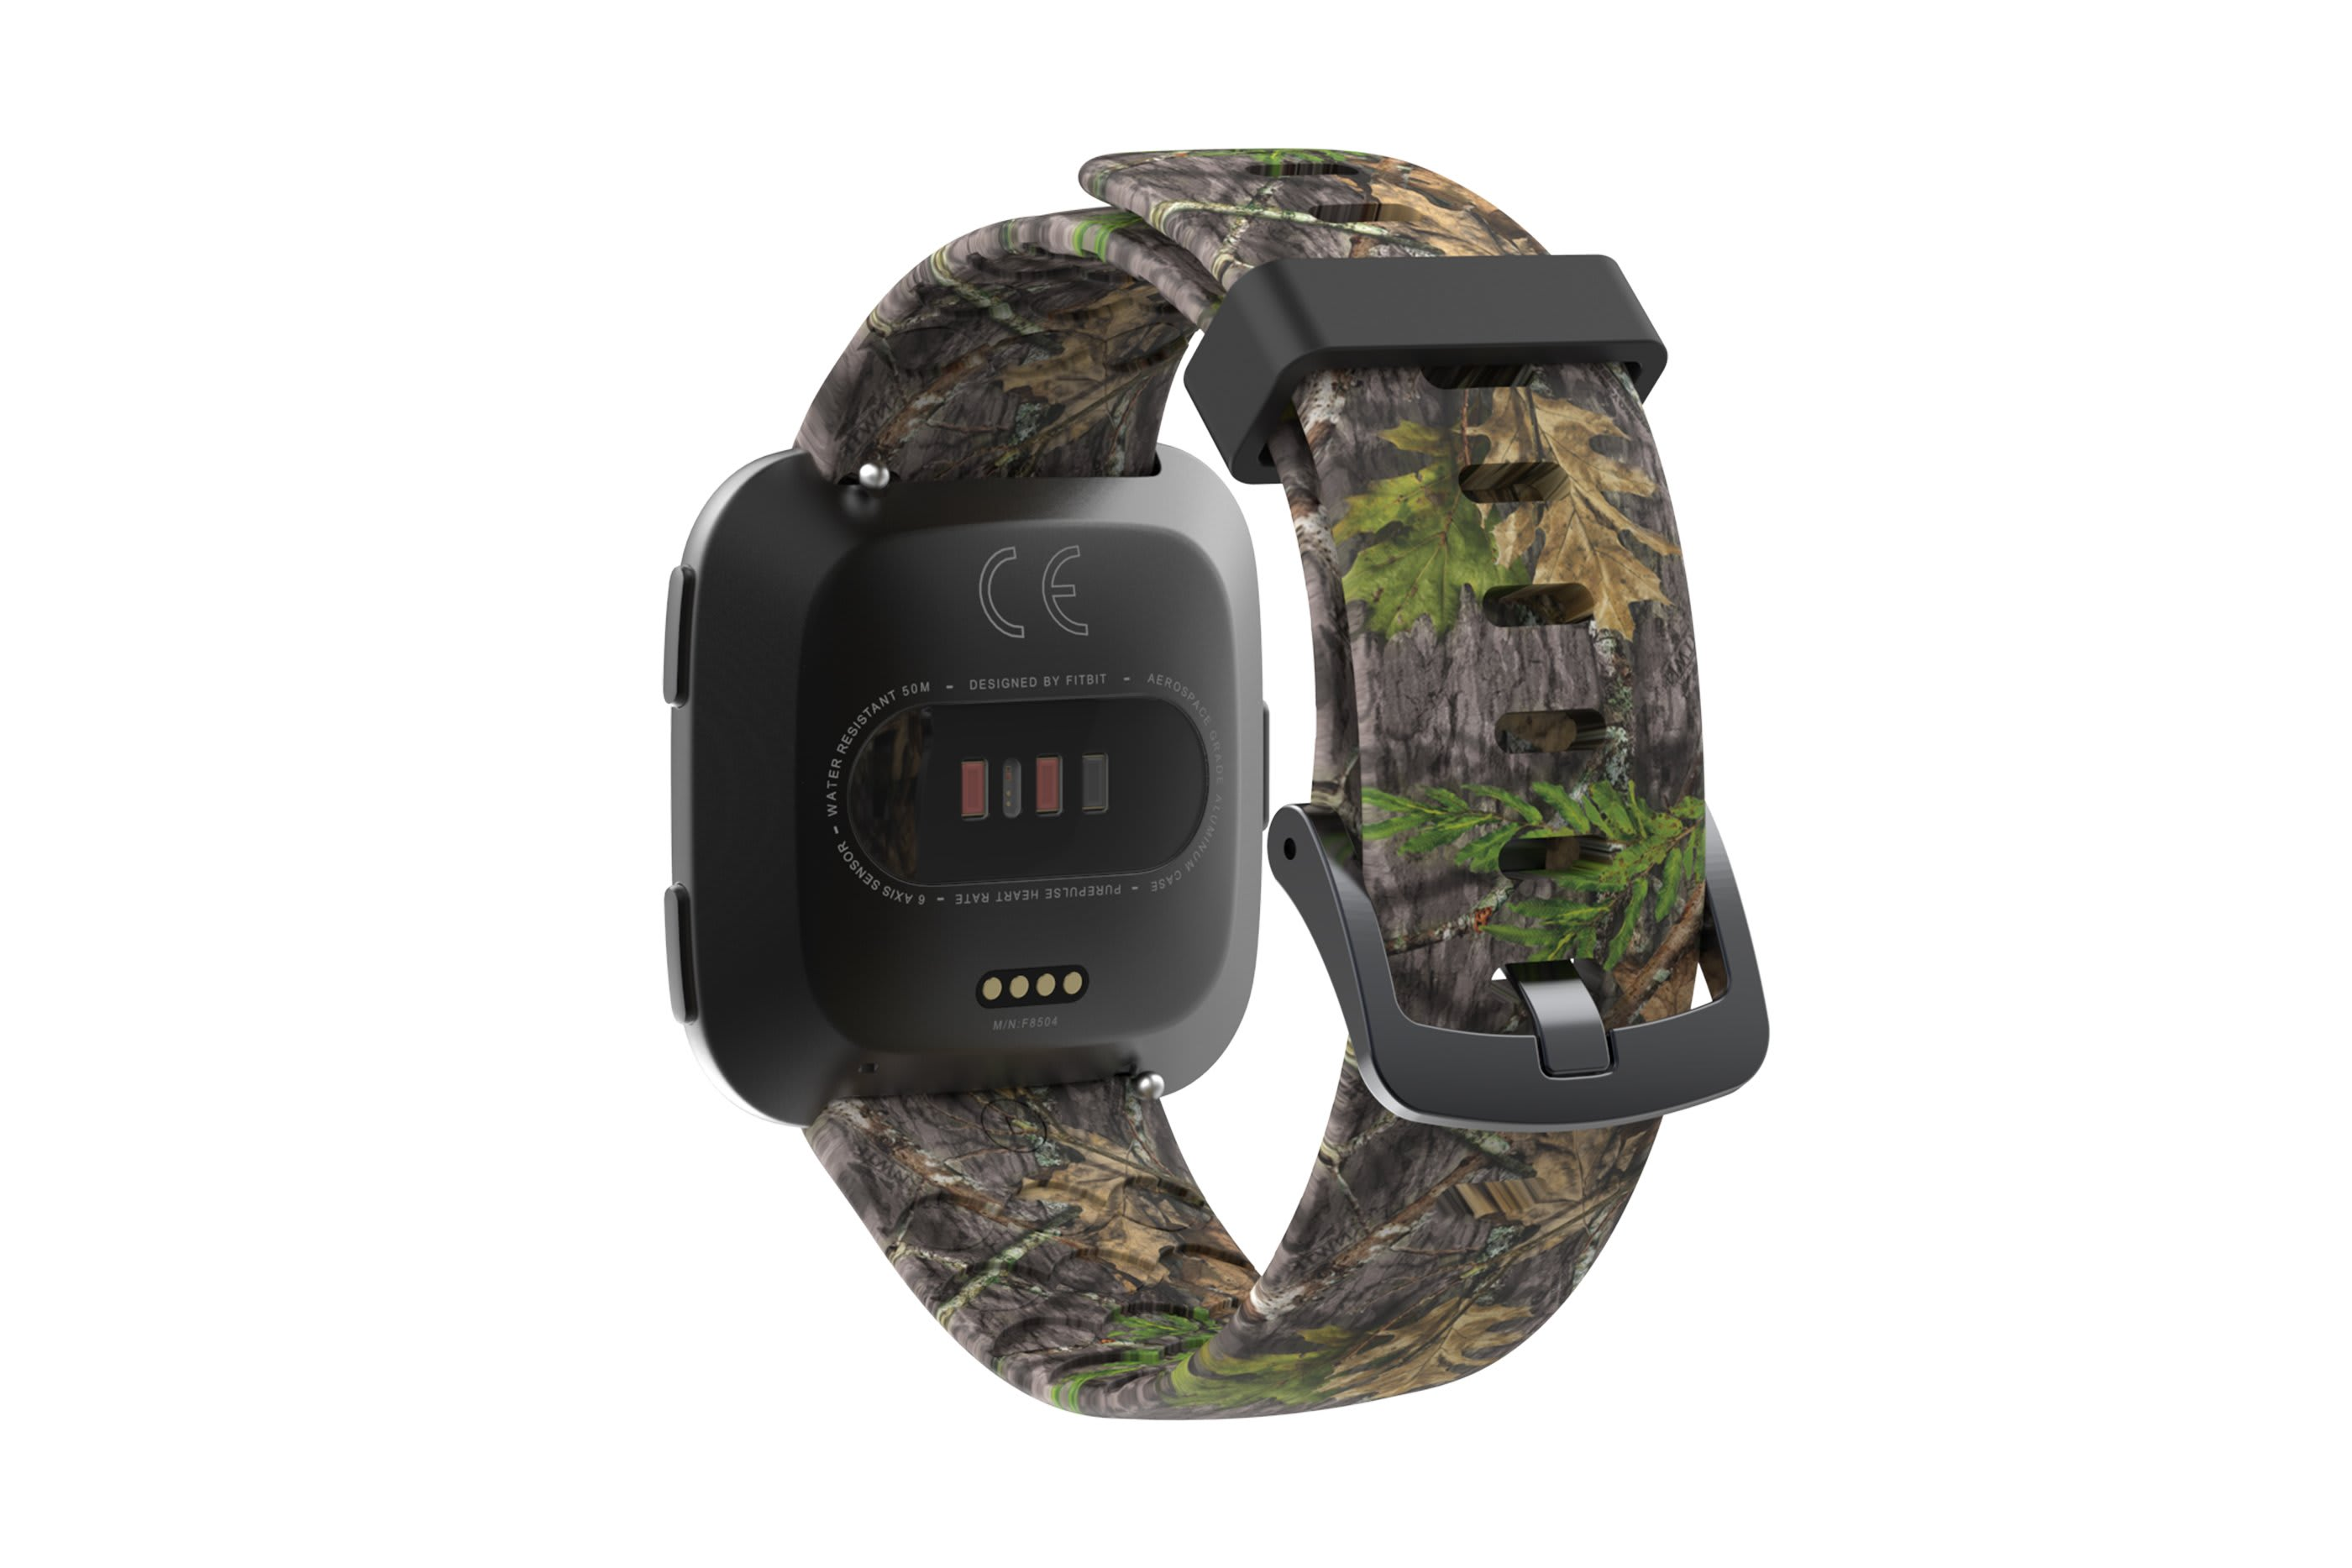 NWTF Mossy Oak Obsession fitbit versa watch band with gray hardware viewed from rear